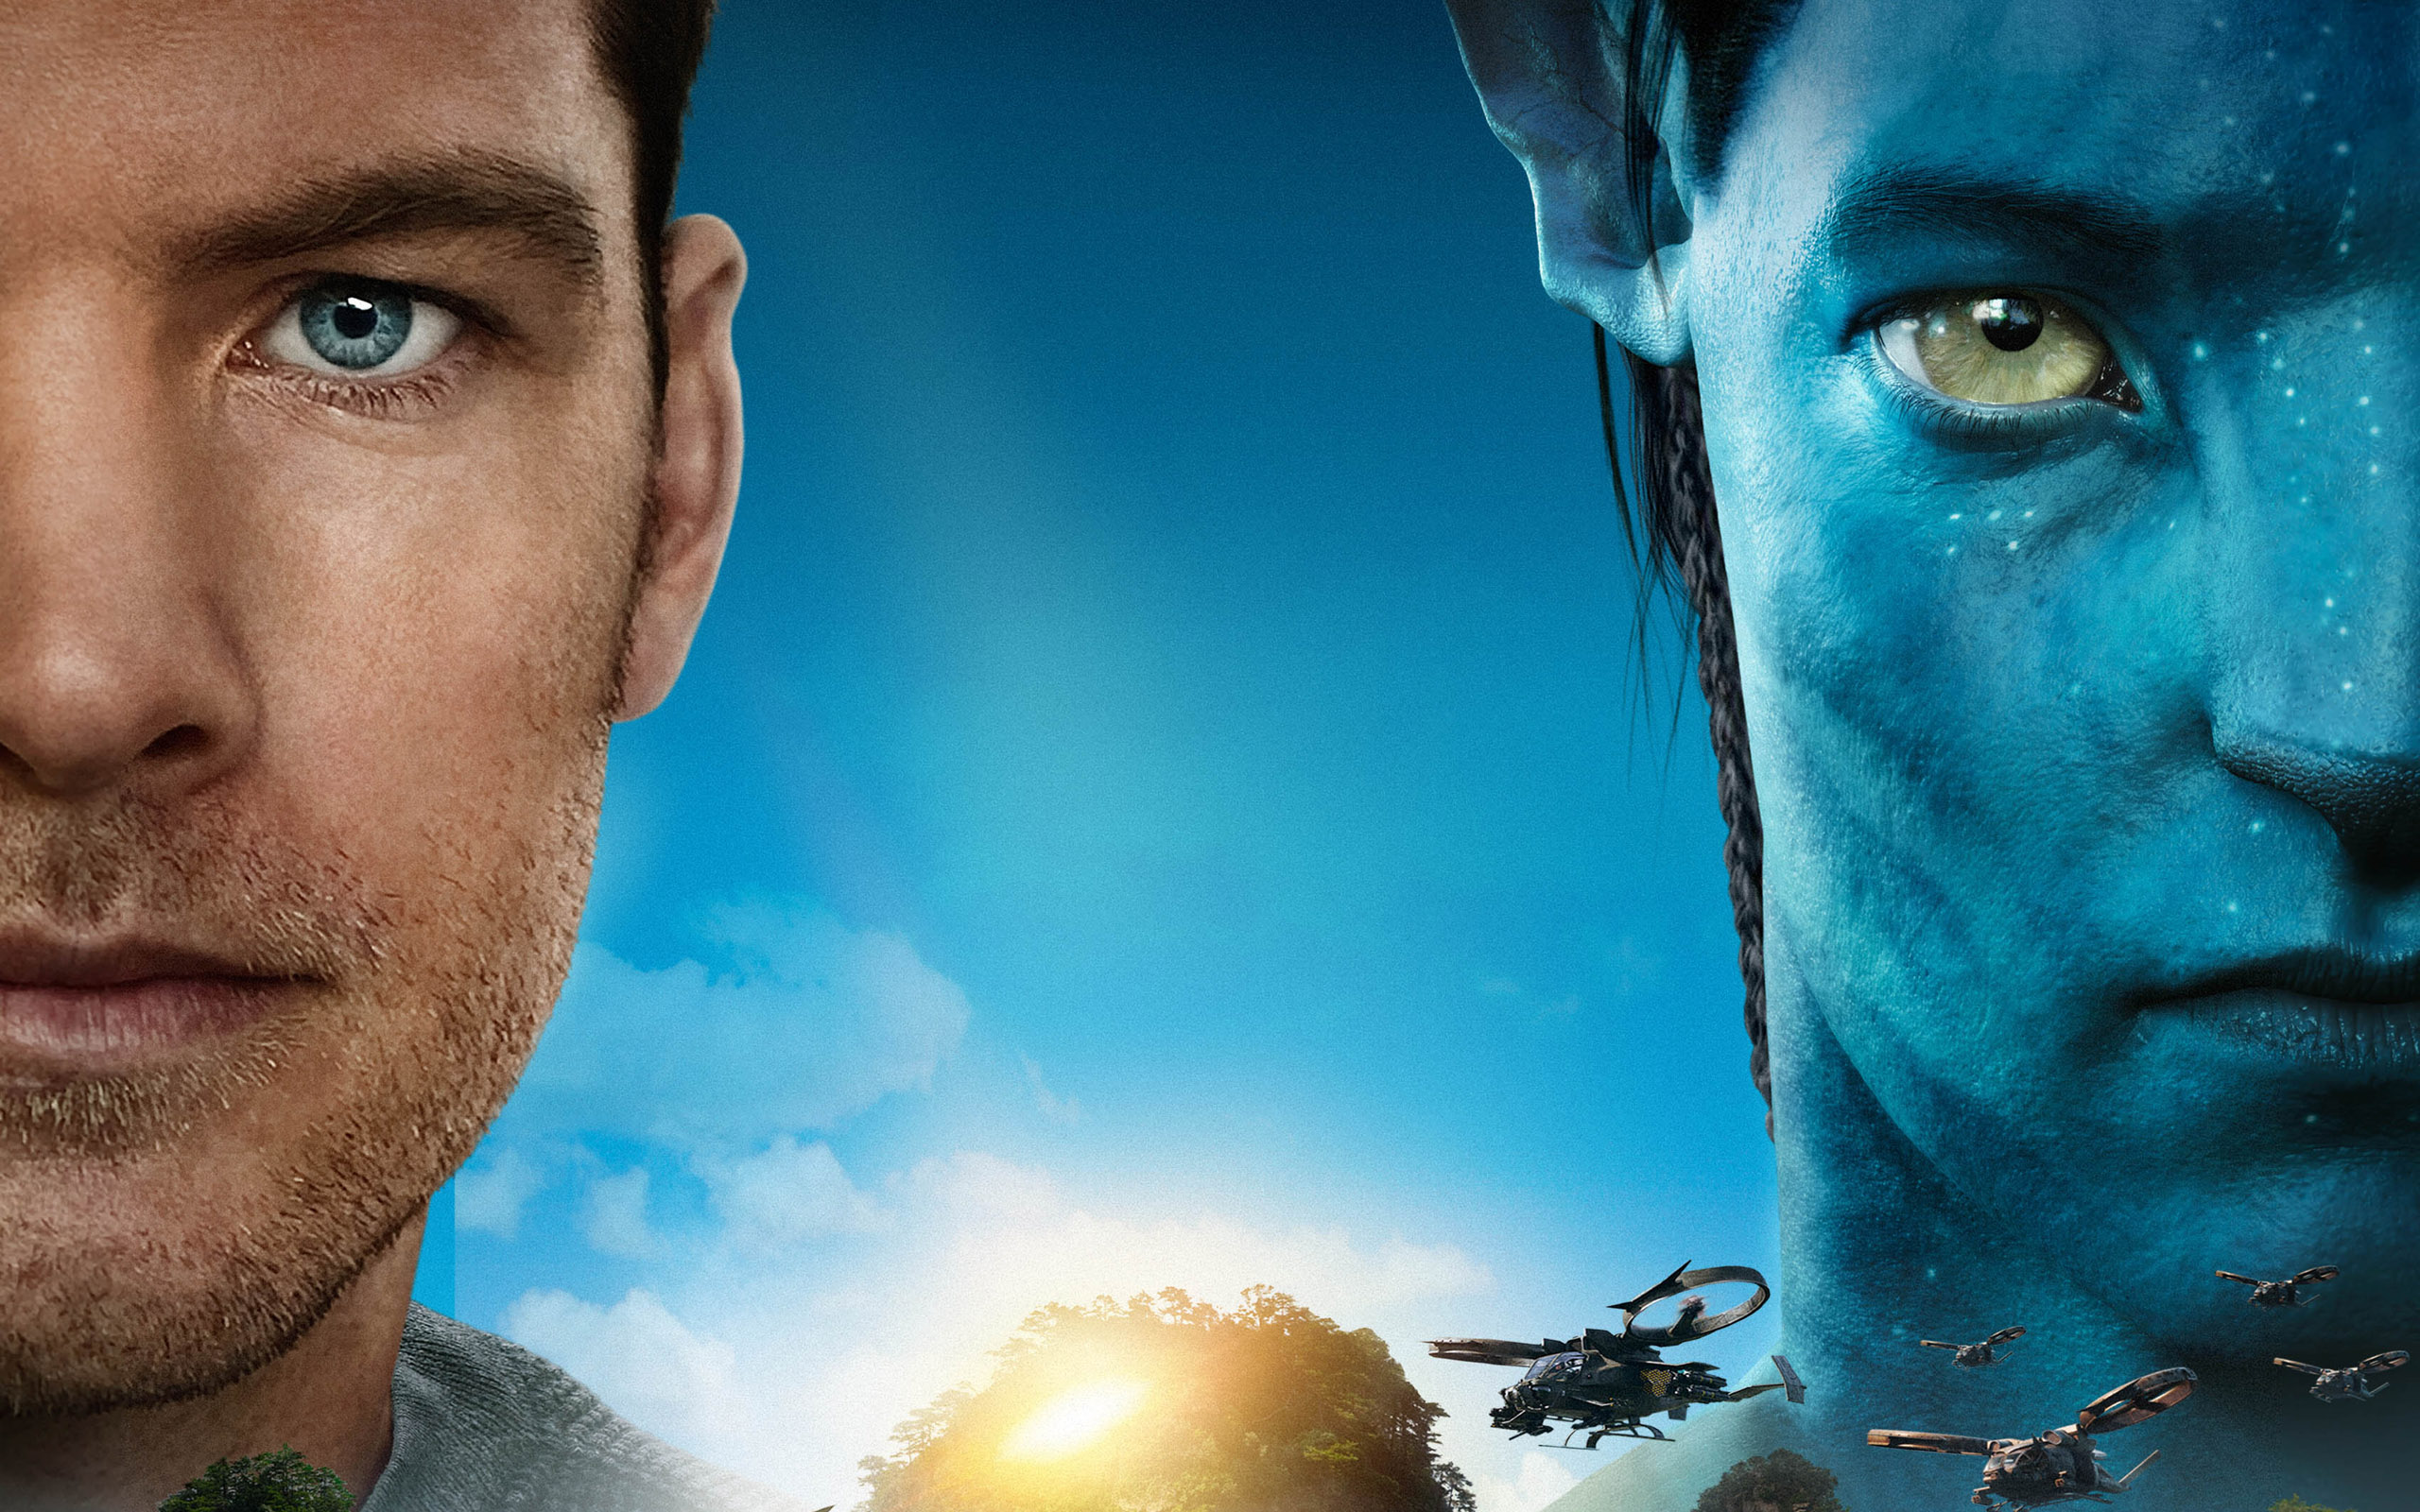 Jake and Avatar Poster 370.27 Kb